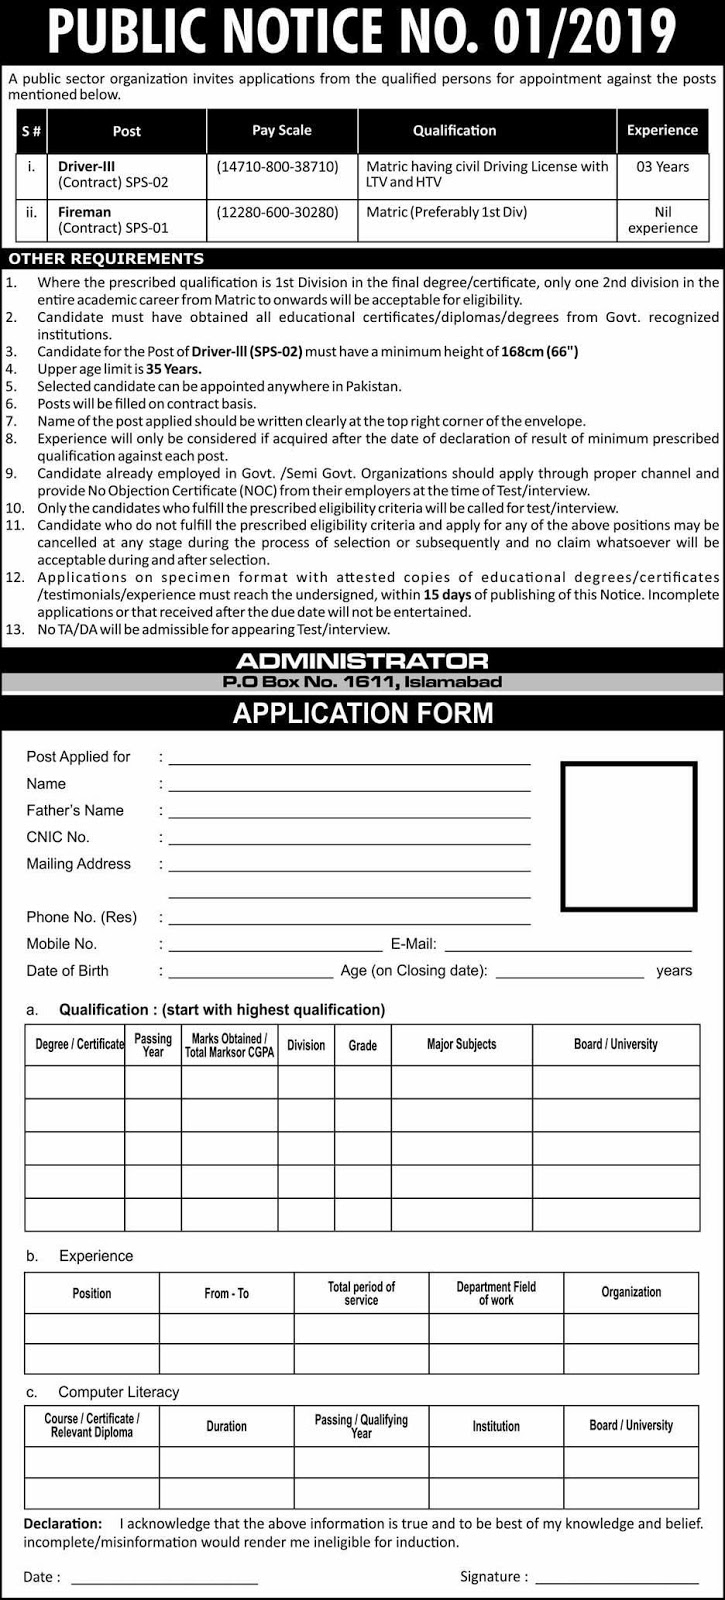 Latest Jobs Announcement Public Notice No. 01/2019